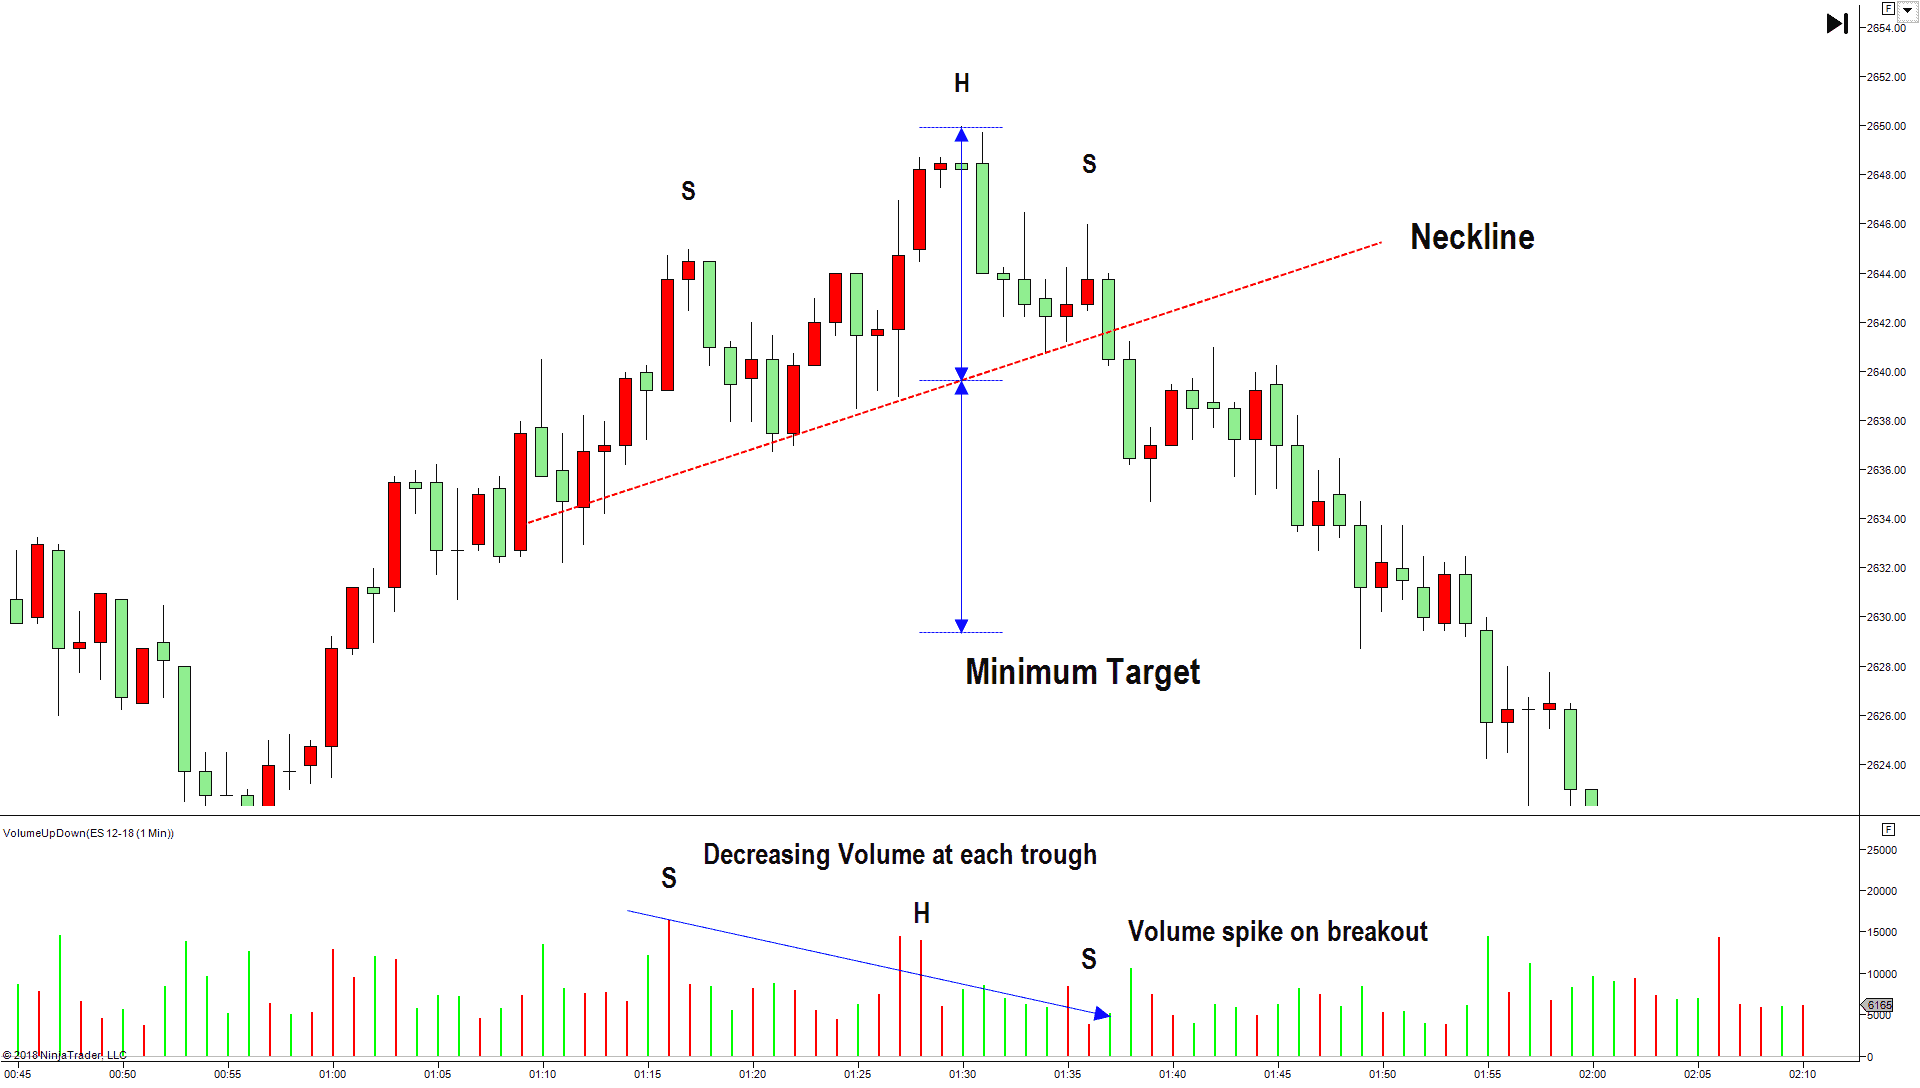 5 best technical analysis trading patterns - Head and shoulders pattern